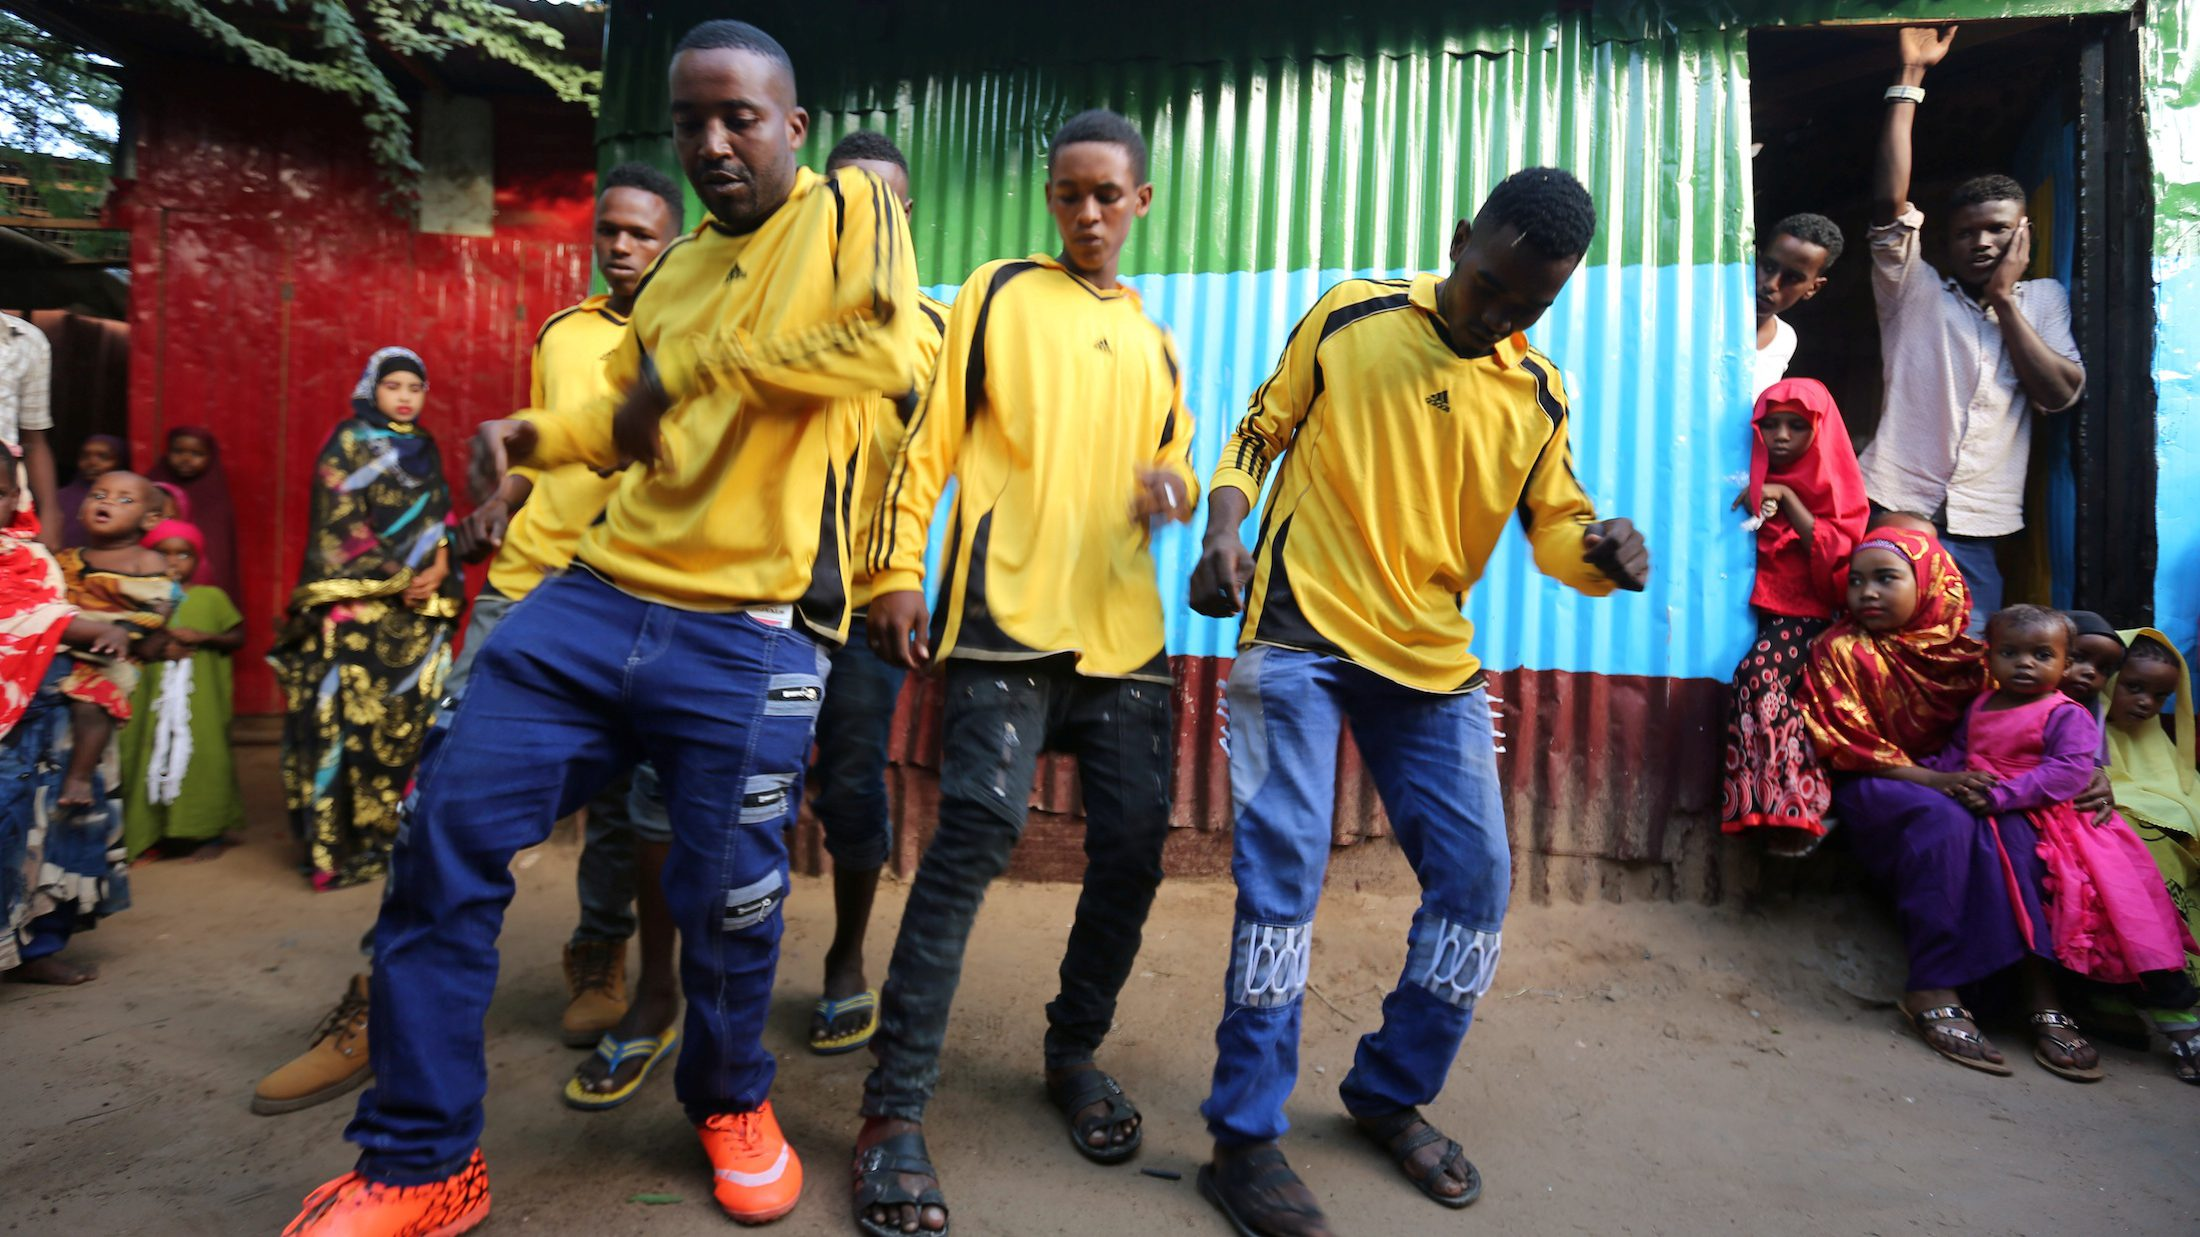 Young boys dance during the wedding ceremony of Somali couple Mohamed Noor and Huda Omar in Mogadishu's Rajo camp, Somalia, August 17, 2016.